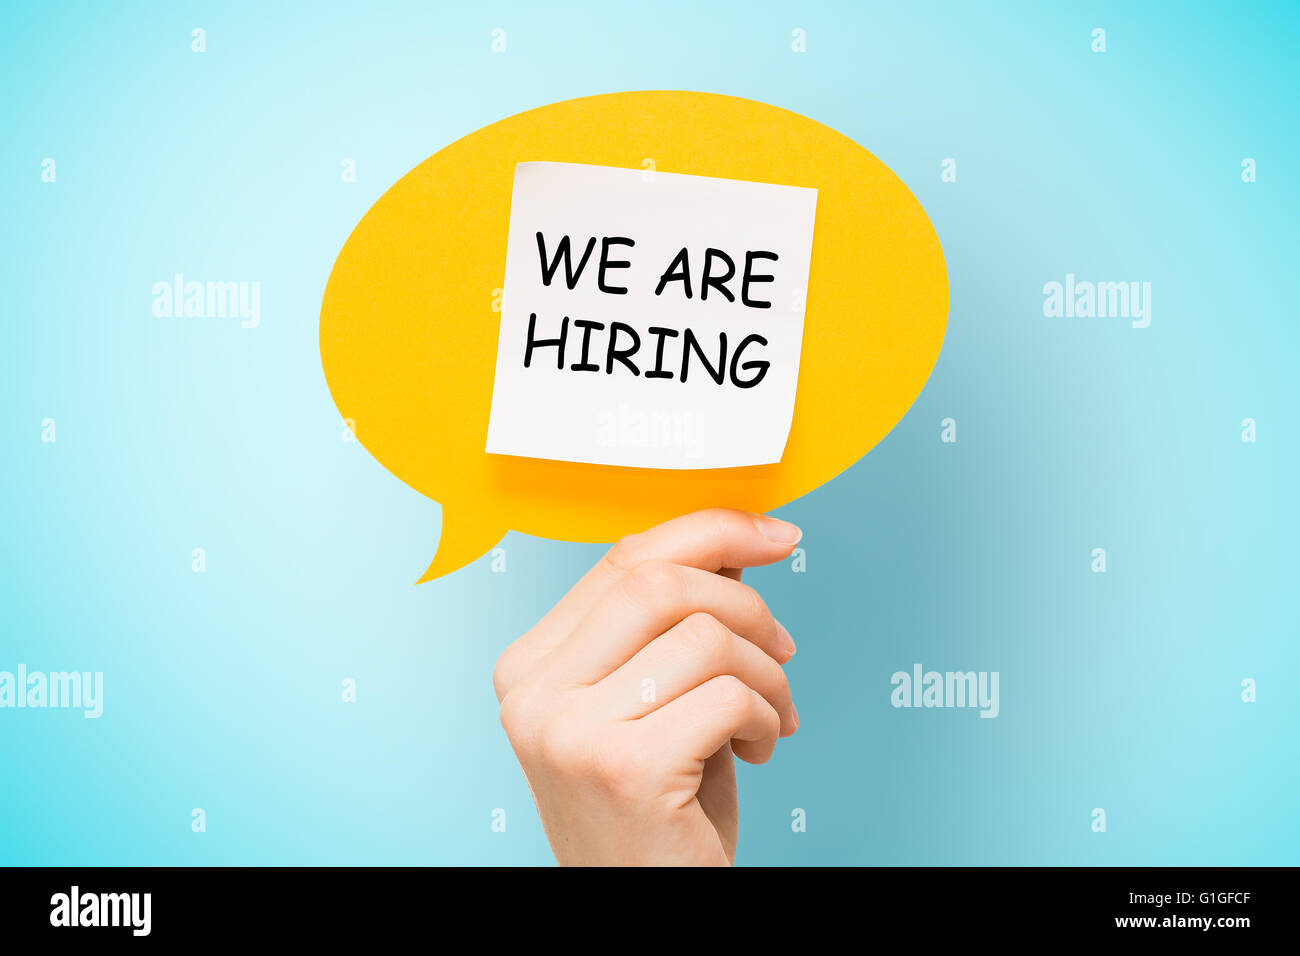 Adhesive note on yellow speech bubble with 'we are hiring' words on blue background. - Stock Image